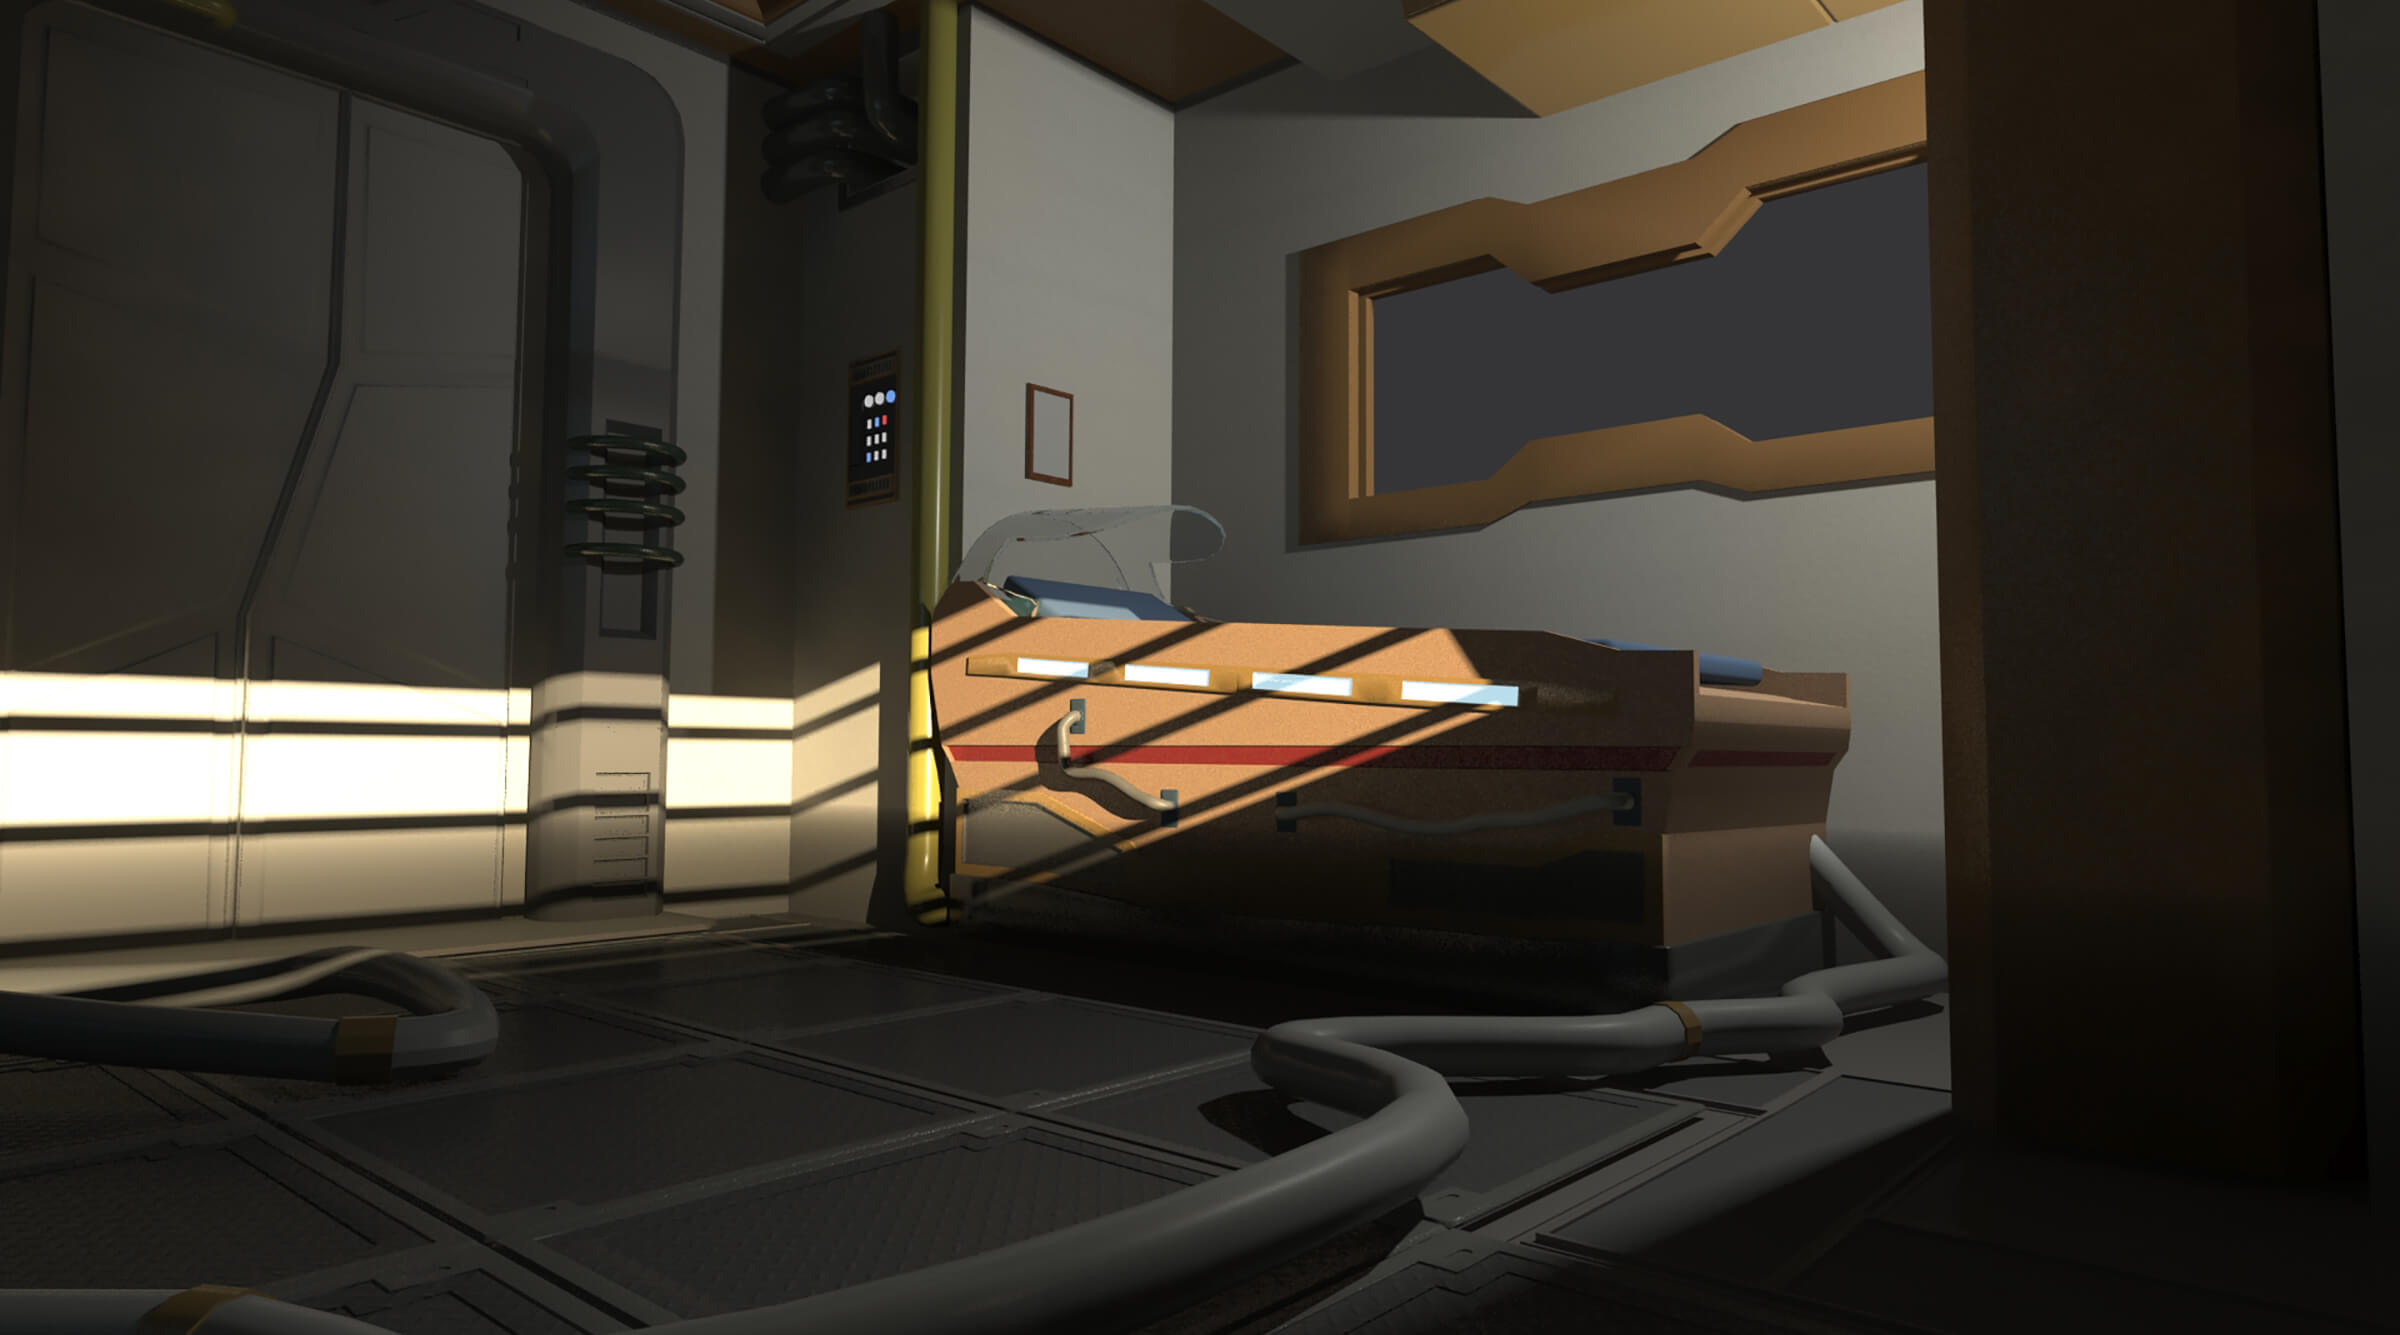 A dimly lit room decorated in a pristine, futuristic style with an elaborate sleeping apparatus seen to one side.